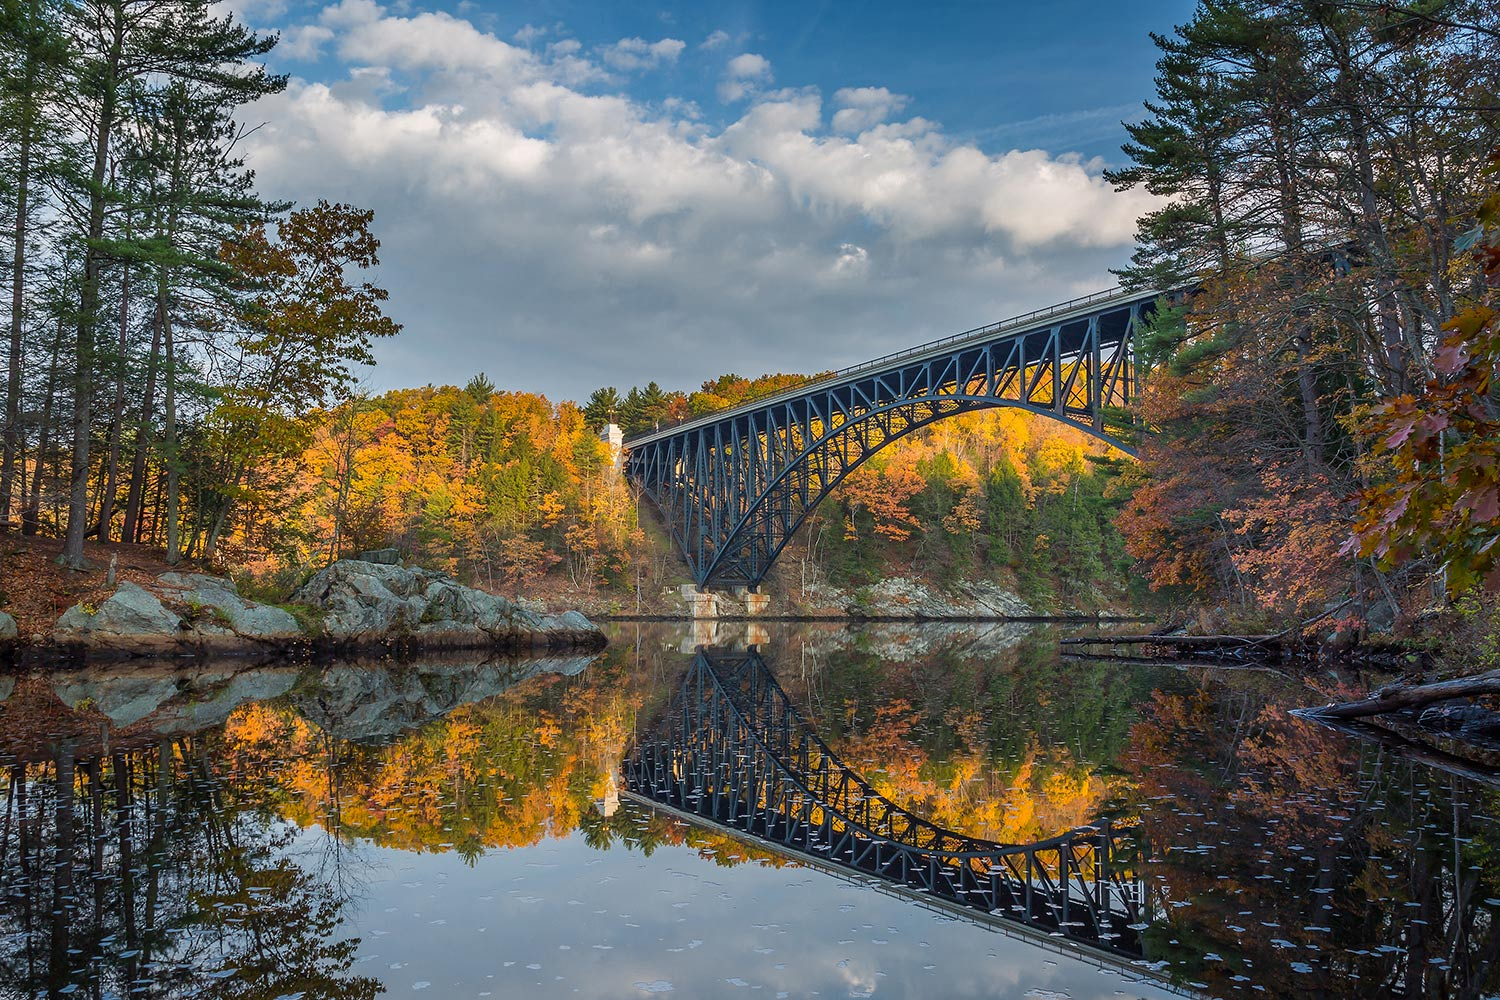 The French King Bridge, Miller's Falls, MA.